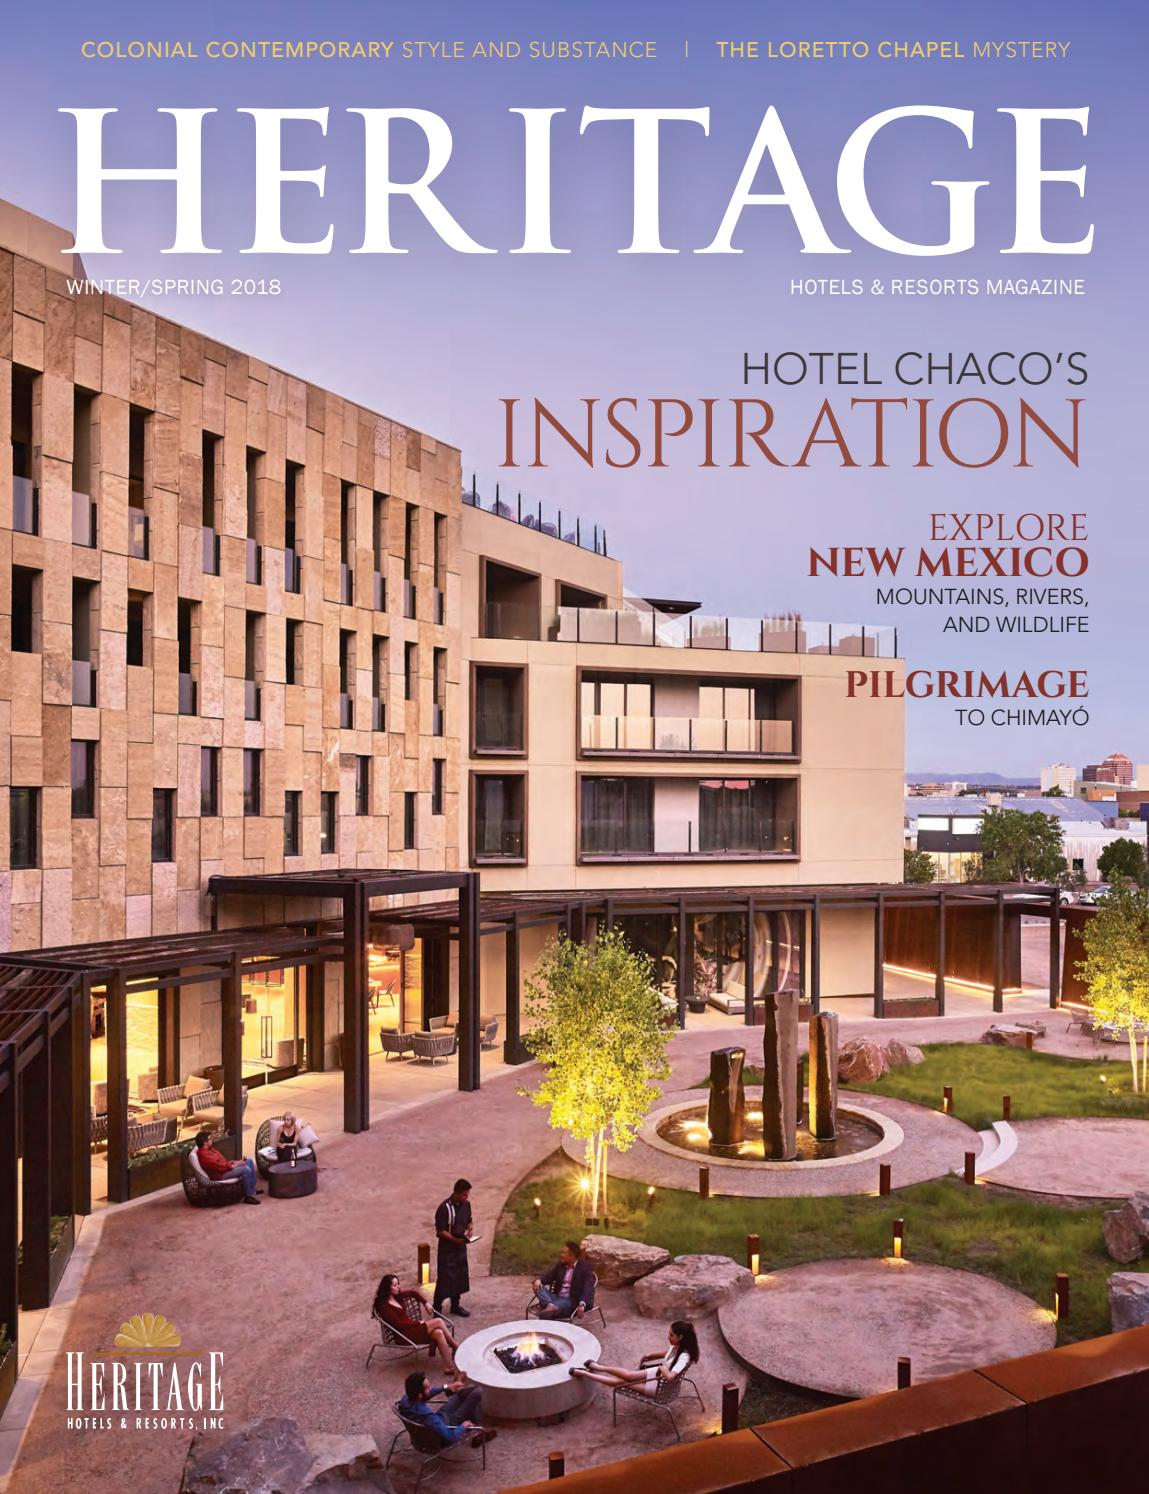 Heritage Winter Spring 2018 Issuu By Heritage Hotels And Resorts